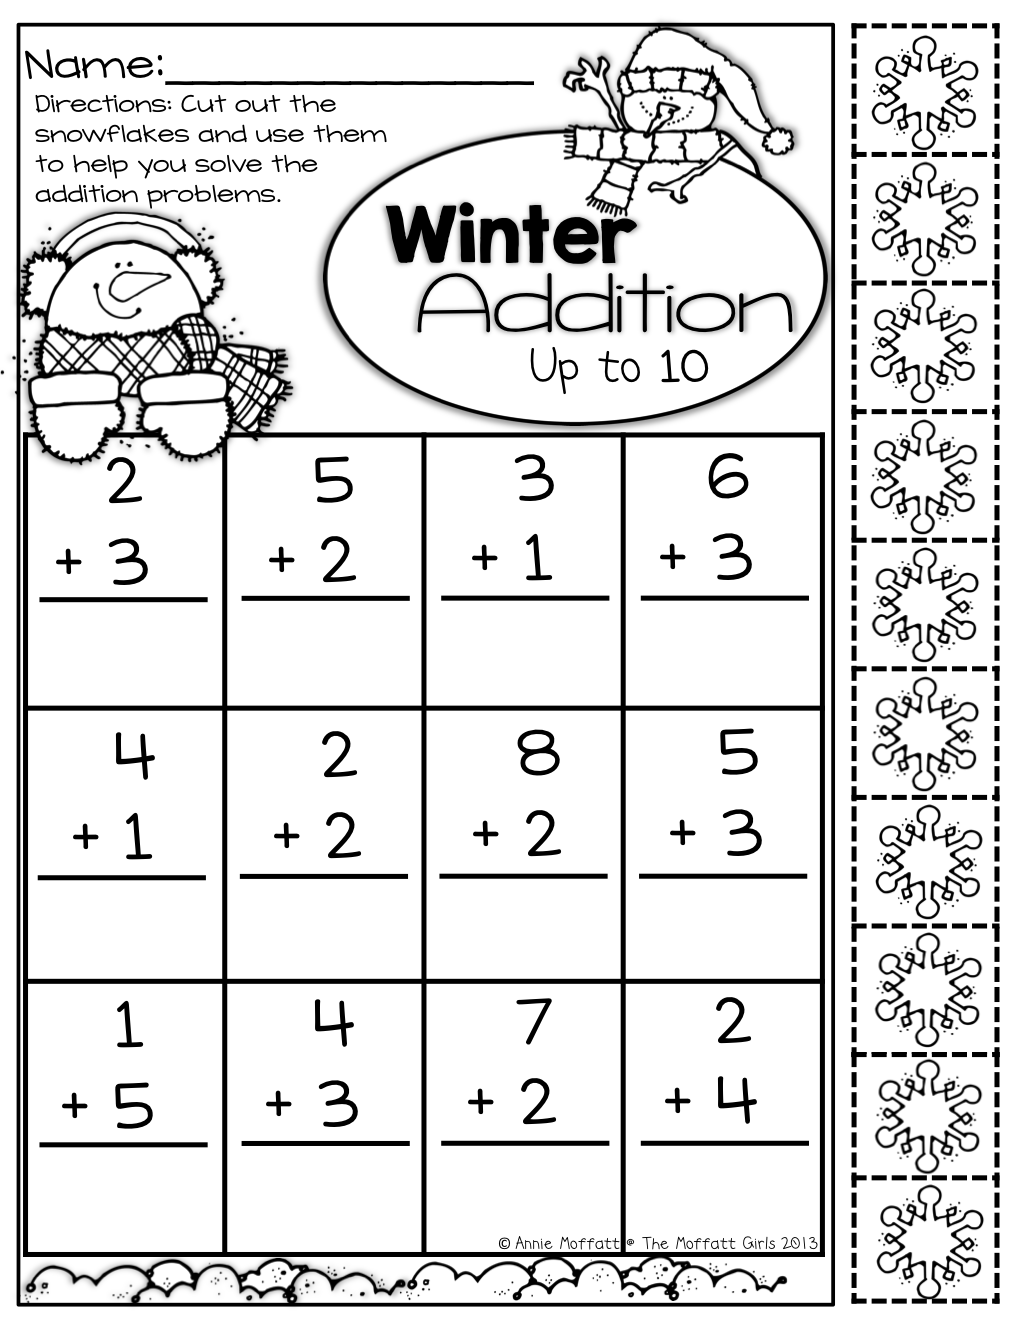 simple addition up to 10 with built in snowflake manipulatives kindergarten activities. Black Bedroom Furniture Sets. Home Design Ideas